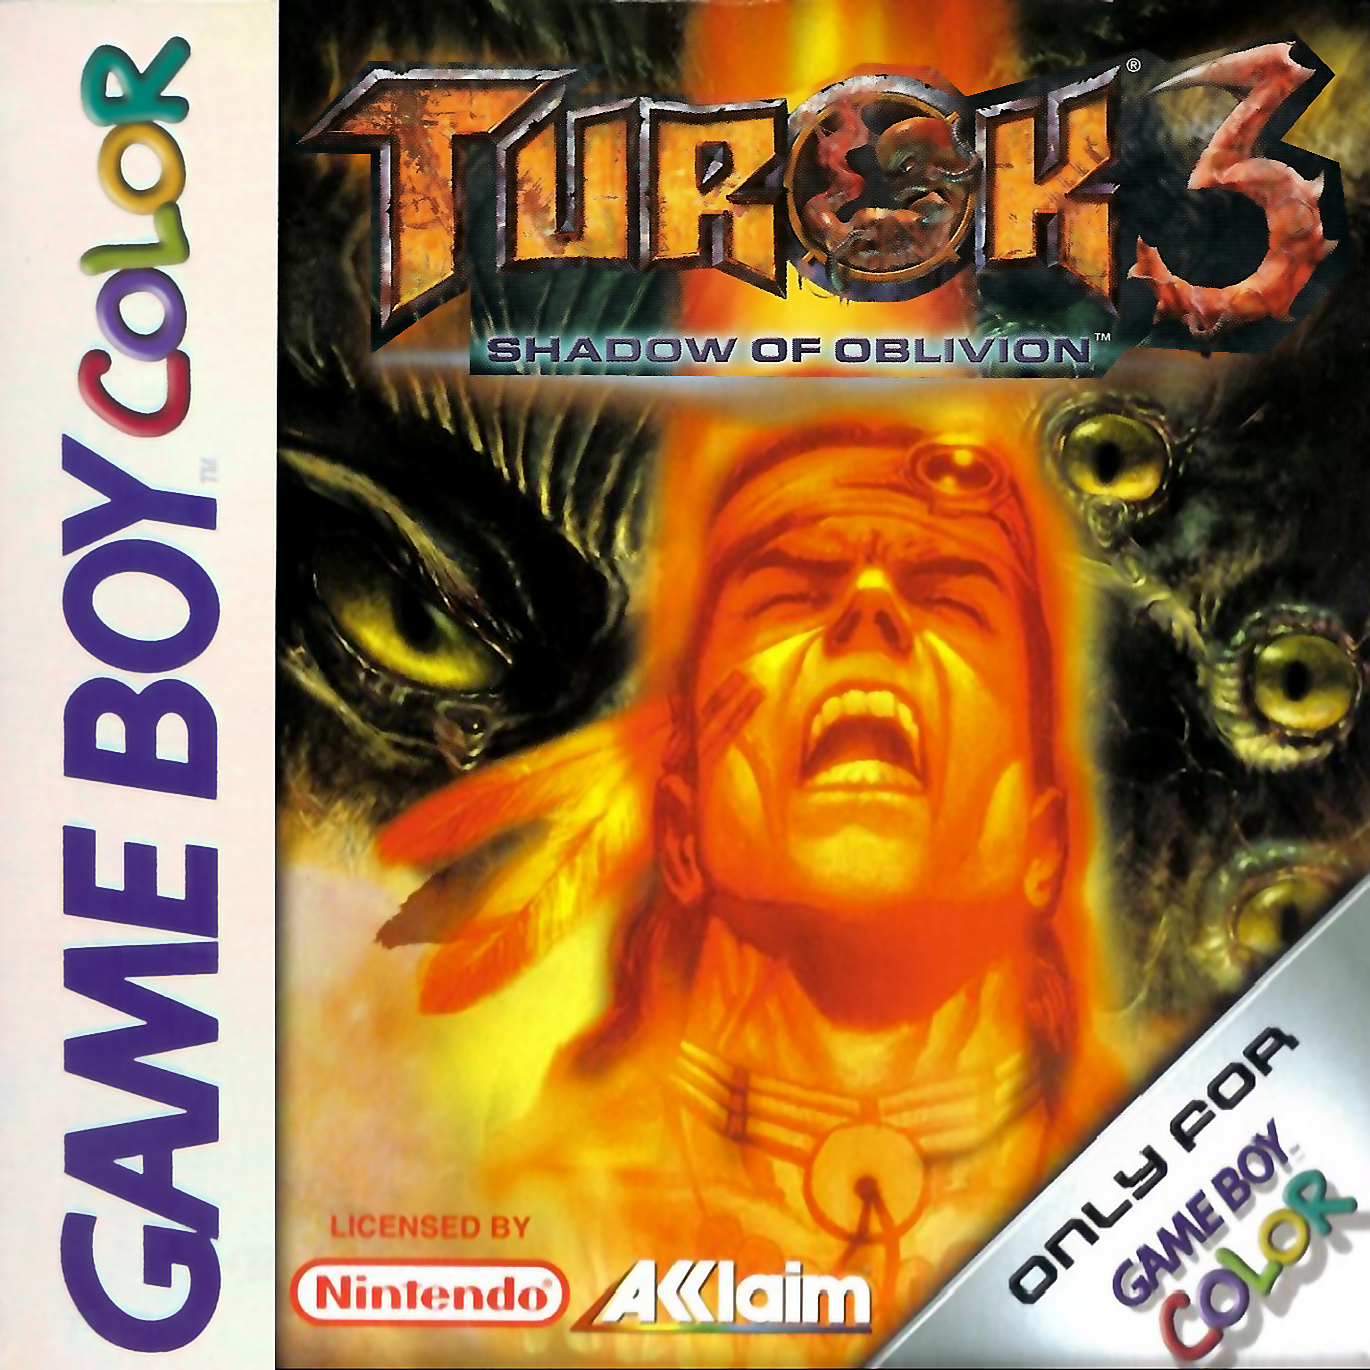 Game boy color online games - Play Turok 3 Shadow Of Oblivion Nintendo Game Boy Color Online